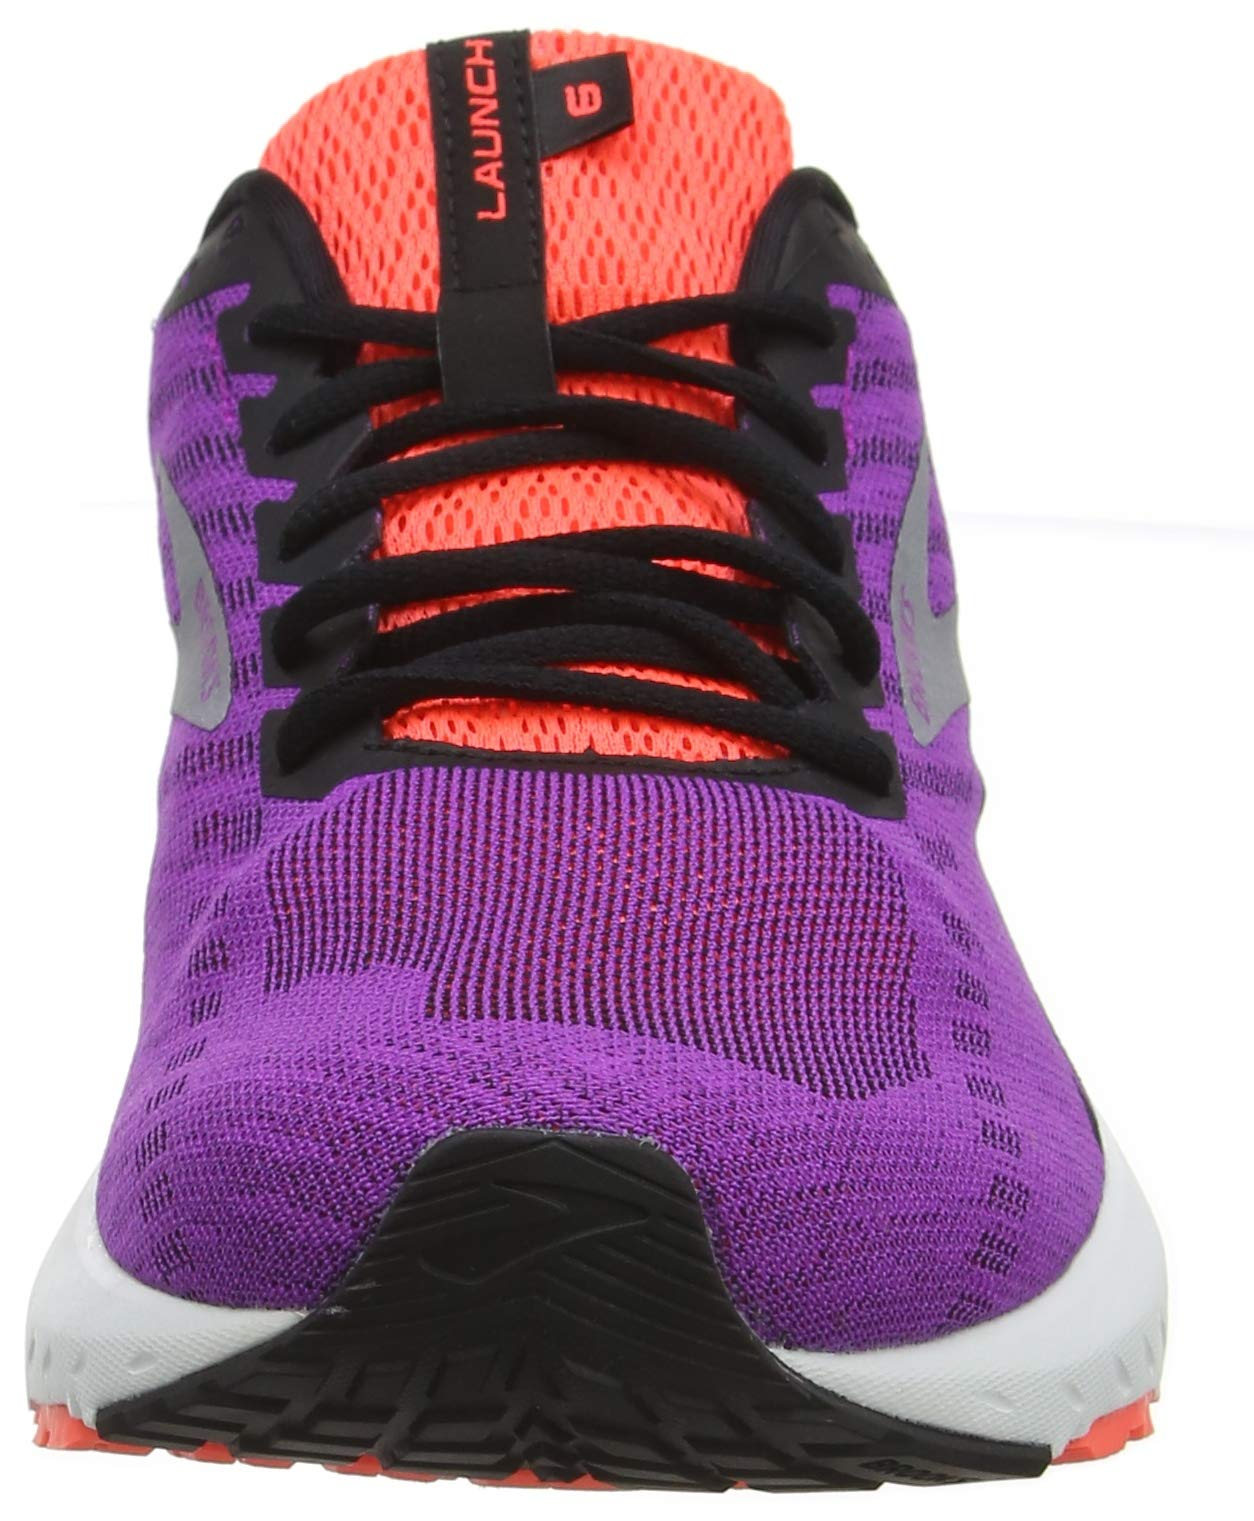 71MFJSby9ZL - Brooks Women's Launch 6 Running Shoes